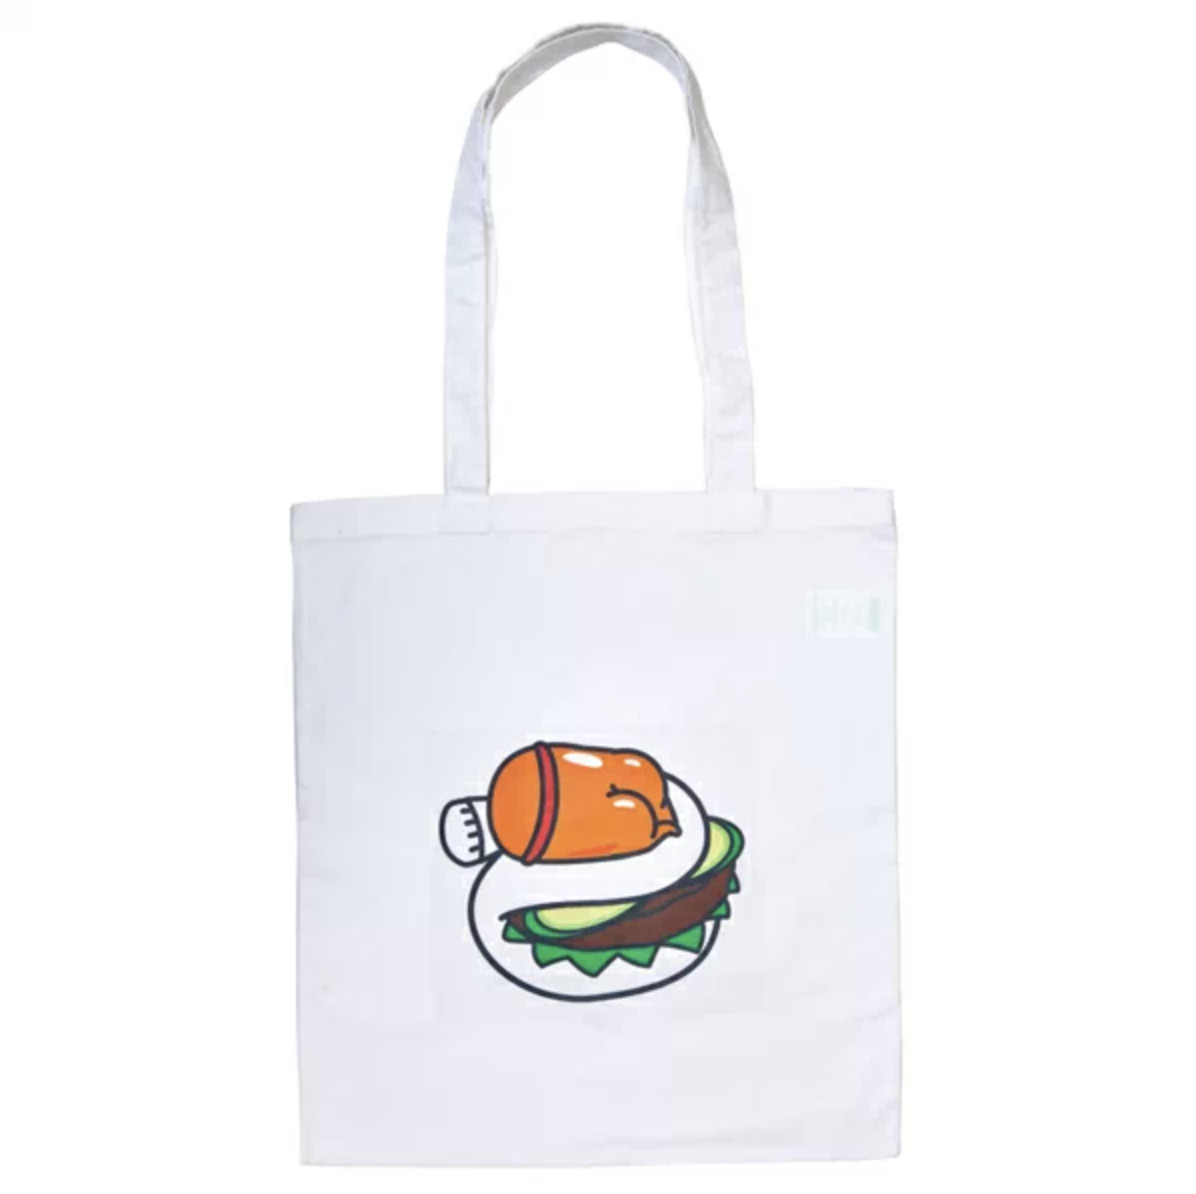 This tote bag from Shoryu is some of the best restaurant merch to buy in London